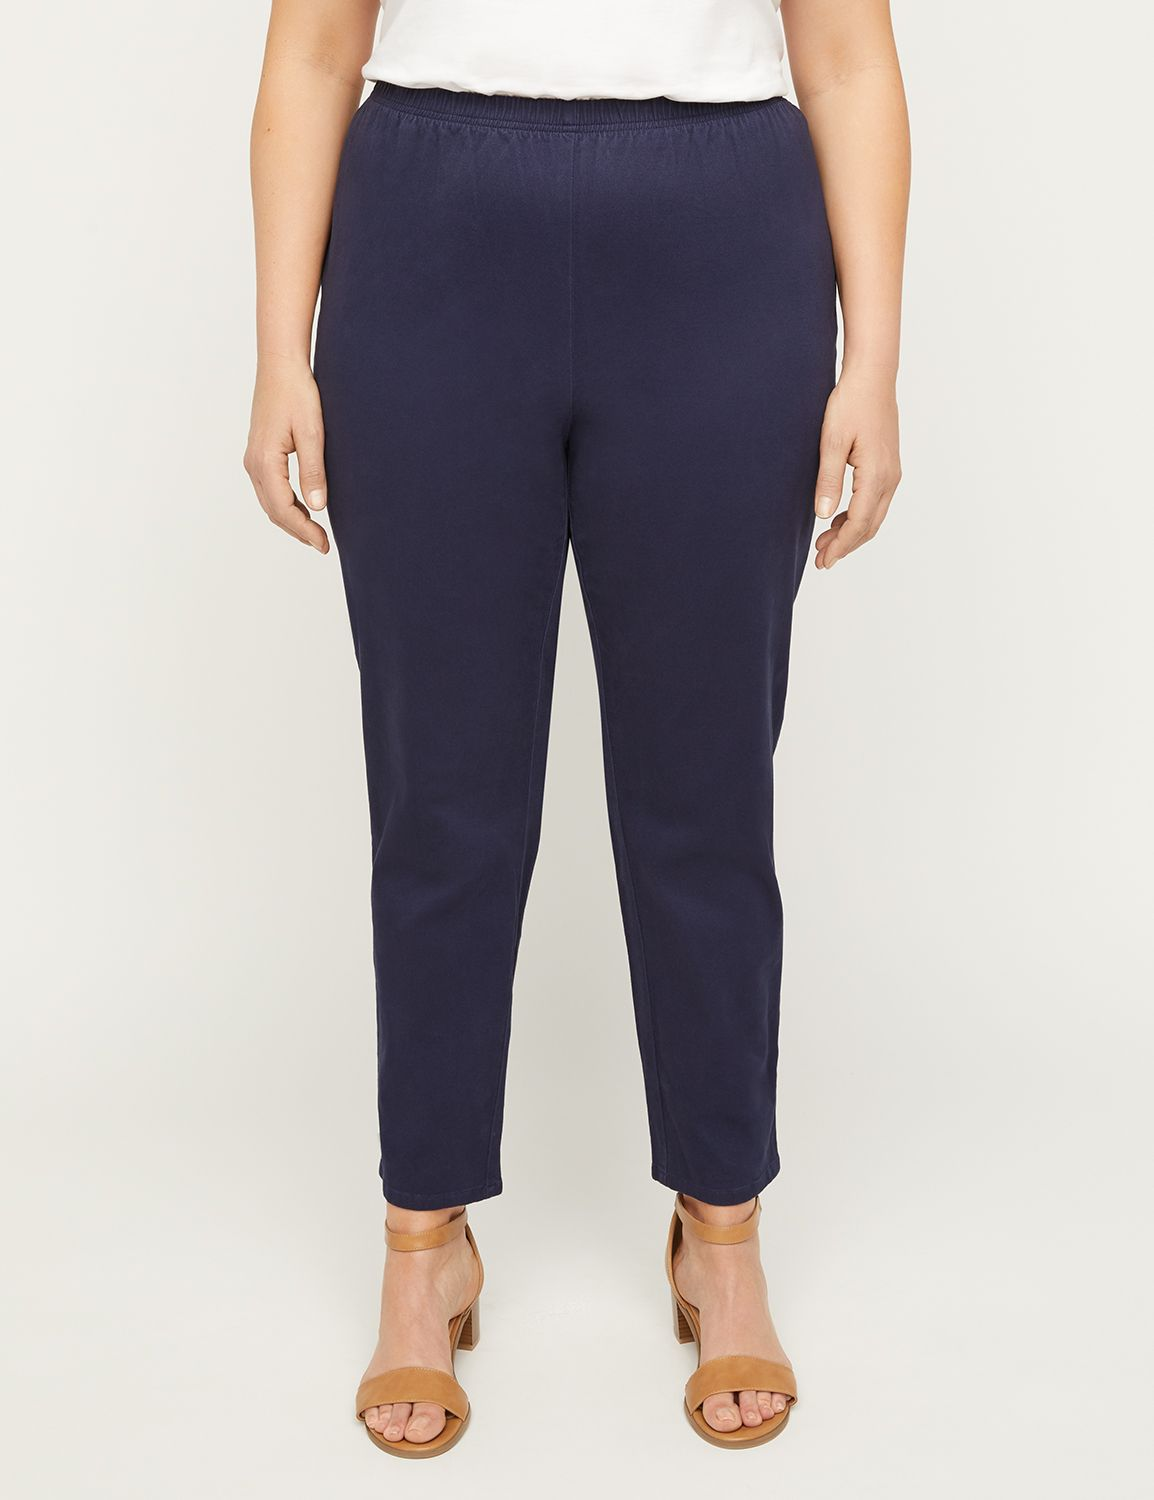 Everyday Pant Everyday Pant MP-201414757